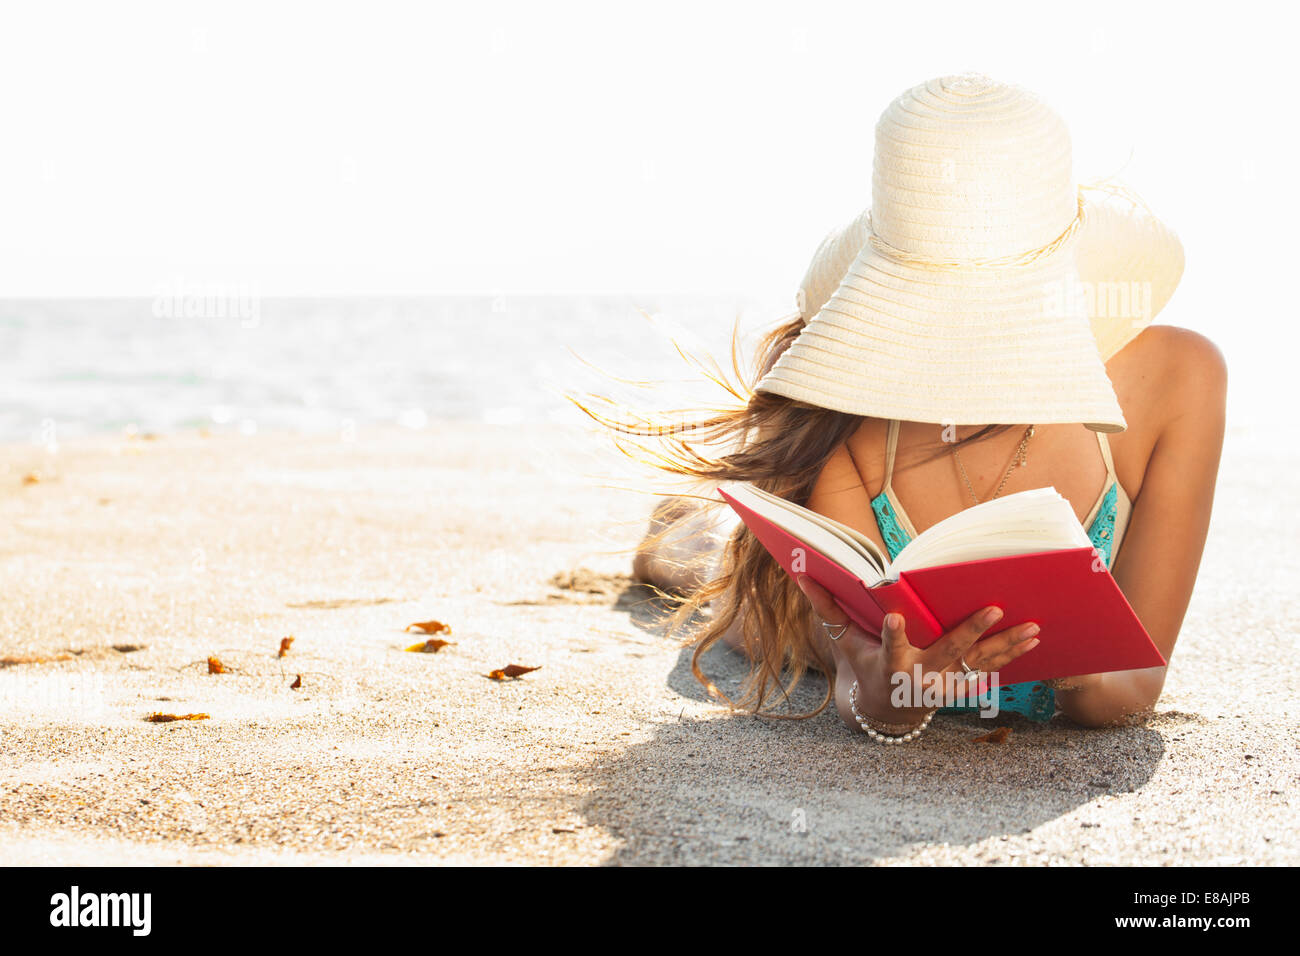 Young woman sunbathing and reading book on beach, Malibu, California, USA - Stock Image